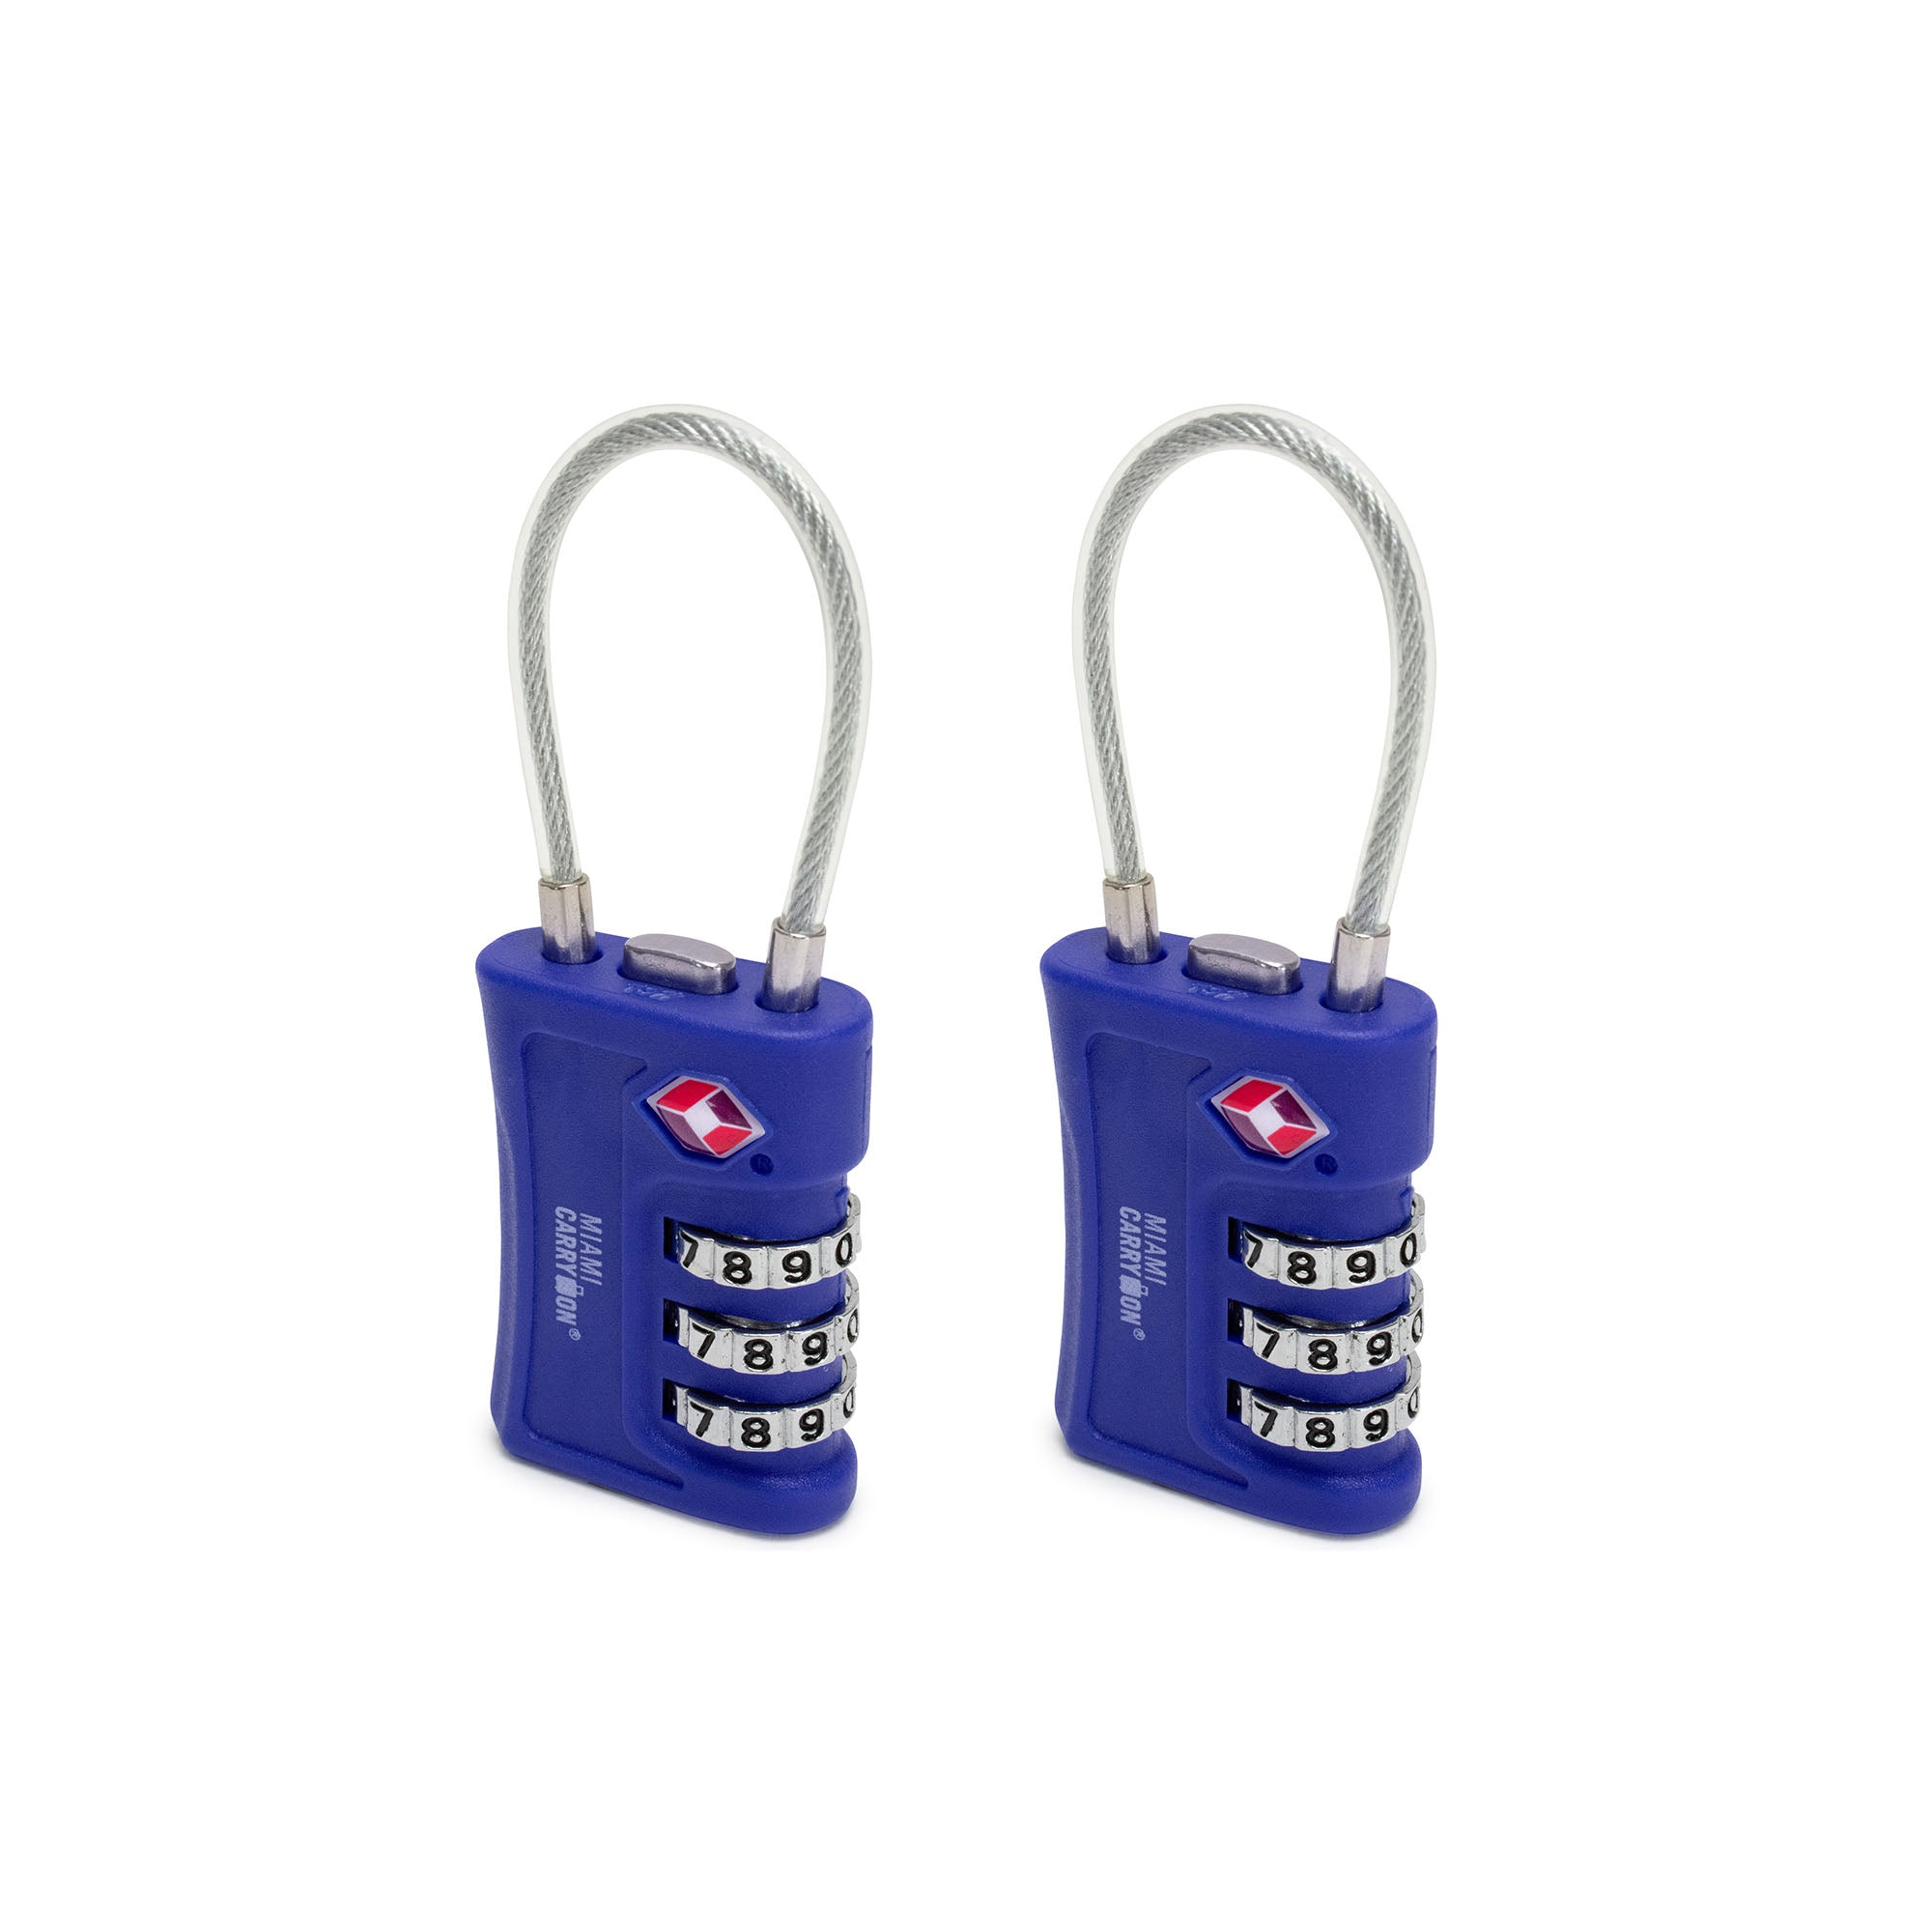 TSA Approved Cable Combination Padlock [VALUE SET] - Blue / 2 Pack - Travellty